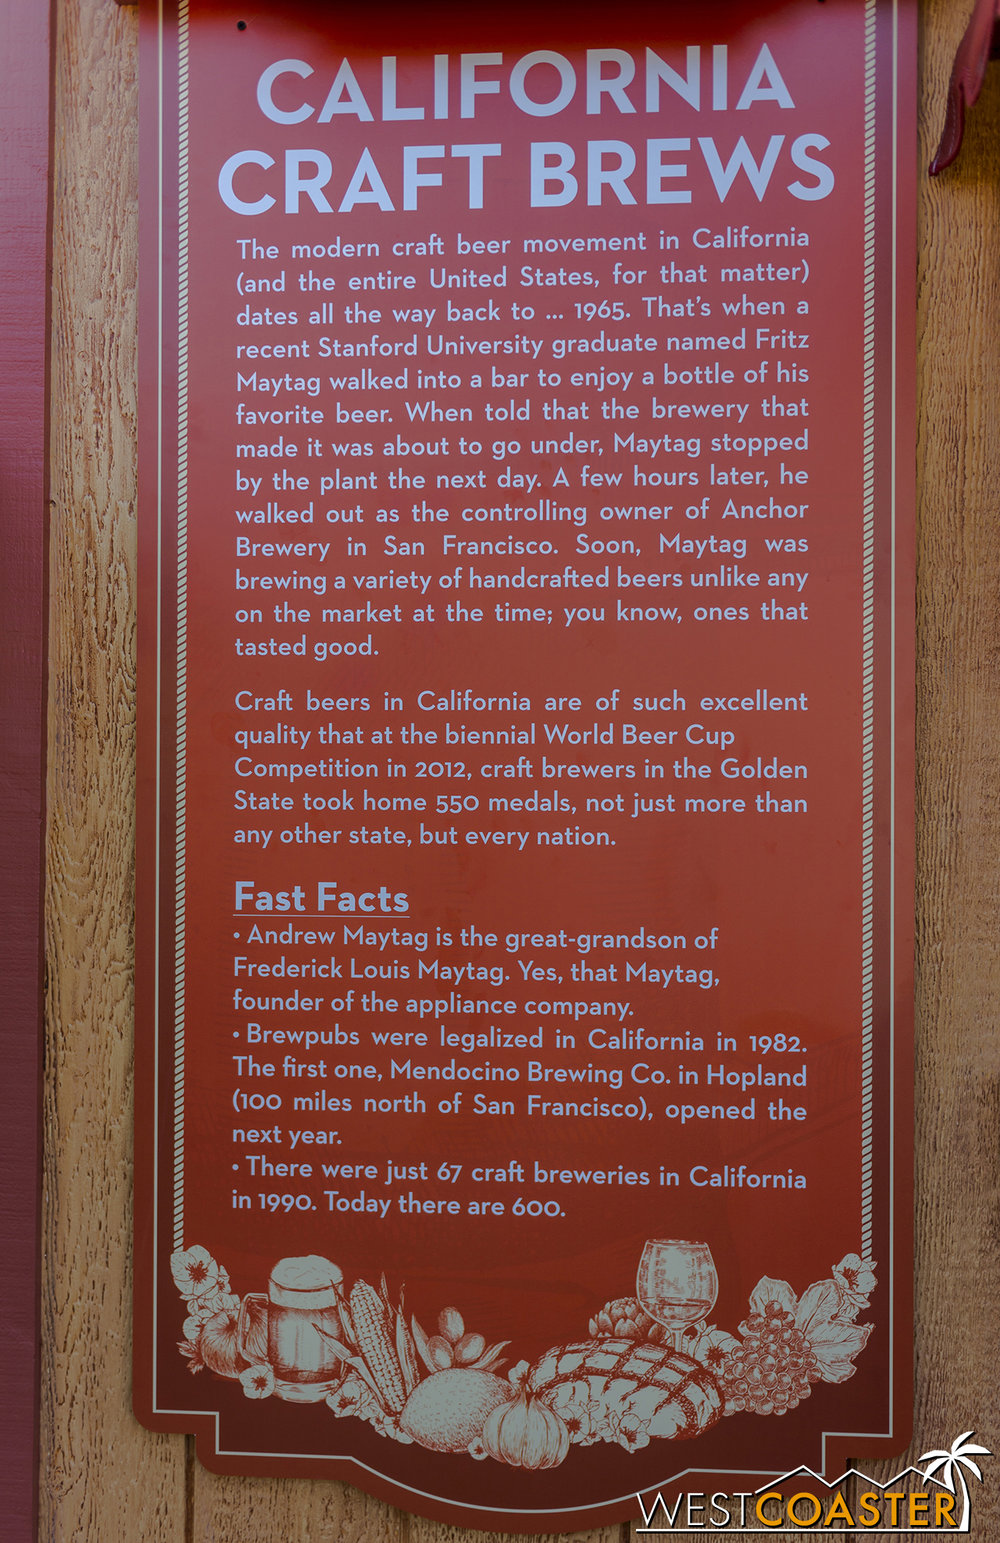 DLR-17_0314-H-Descriptions-05-CaliforniaCraftBrews.jpg